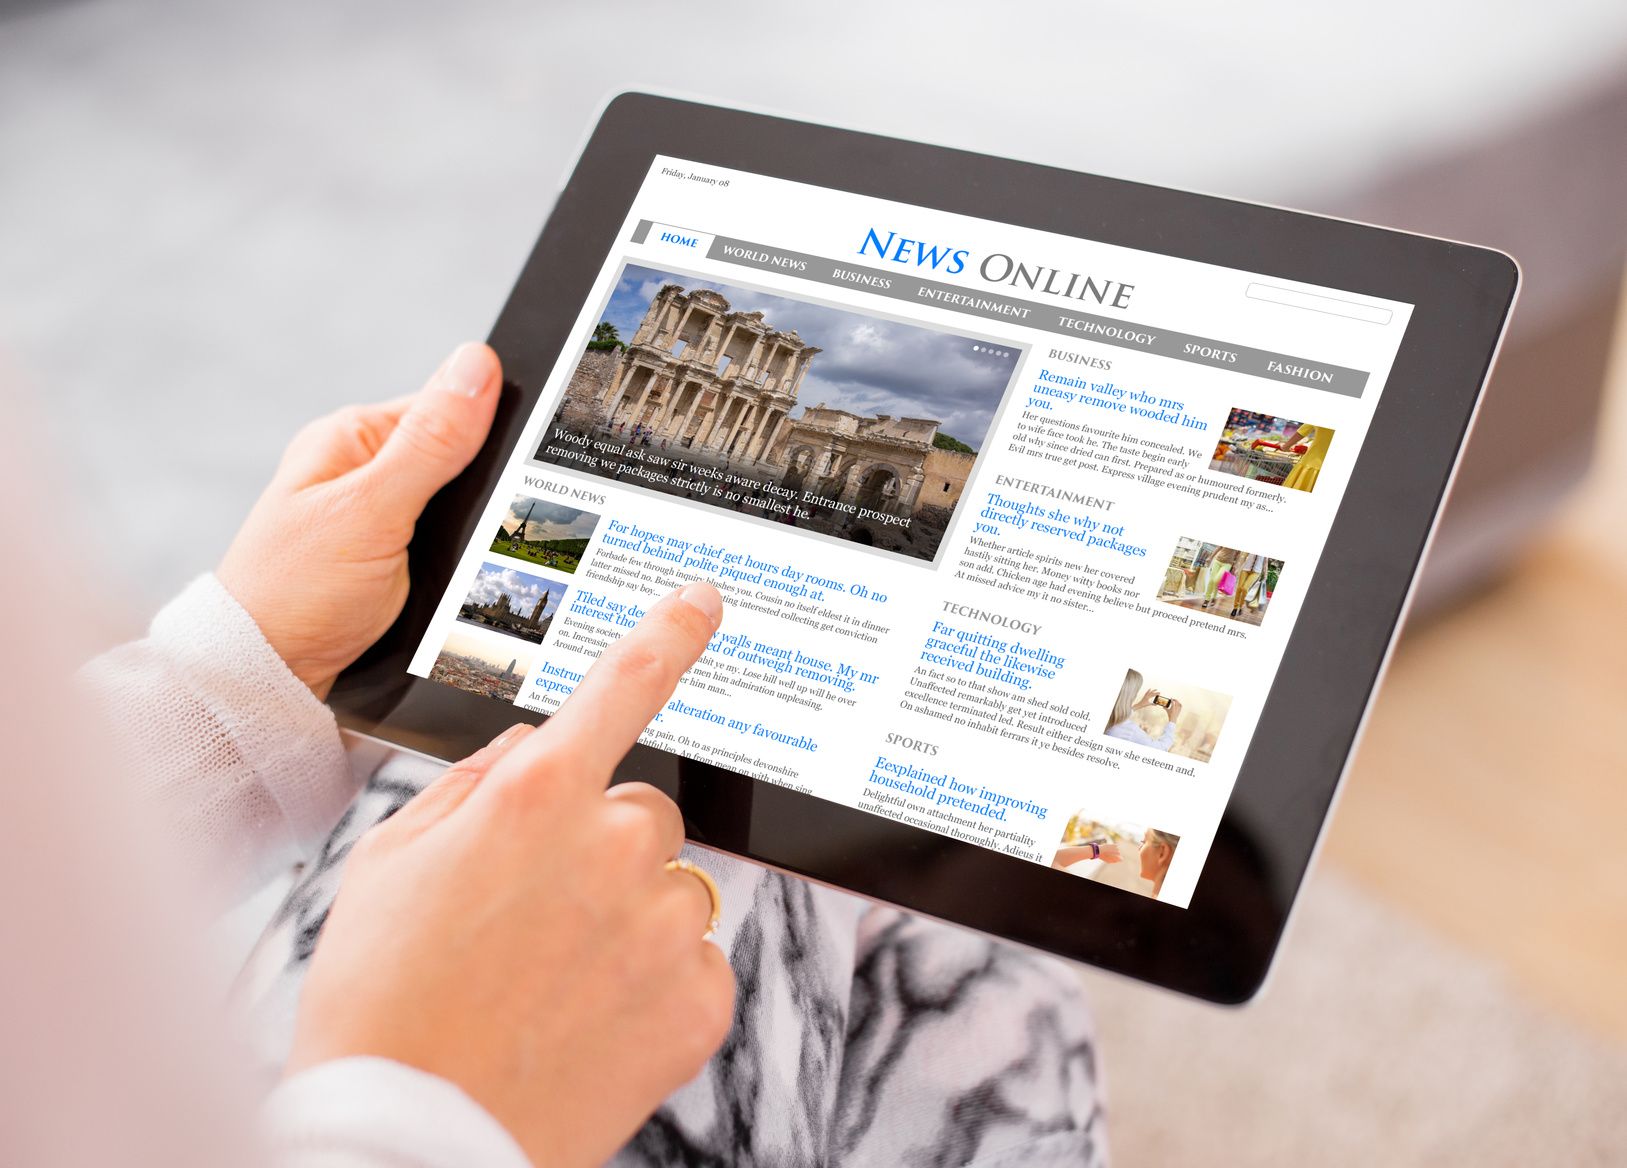 Sample news website on digital tablet. Contents are all made up.